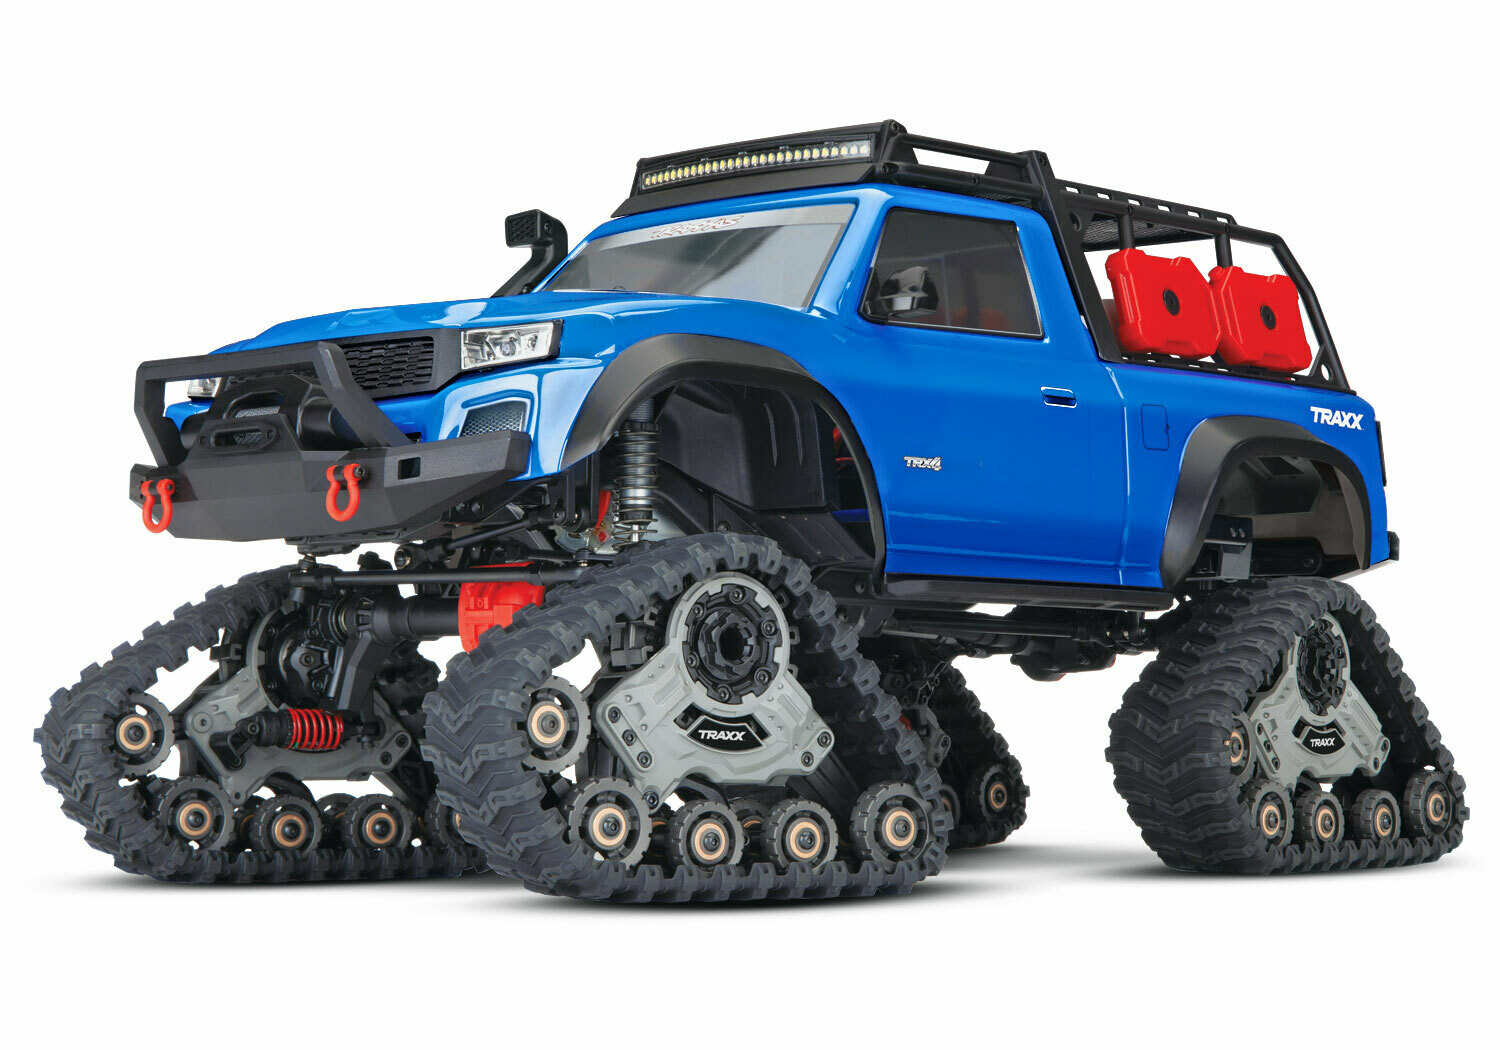 TRX-4 Equipped with Traxx (TQ/No Batt or Chg) - BONUS OFFER! INCLUDES FOUR TYRES AND WHEELS TO TACKLE ANY TERRAIN